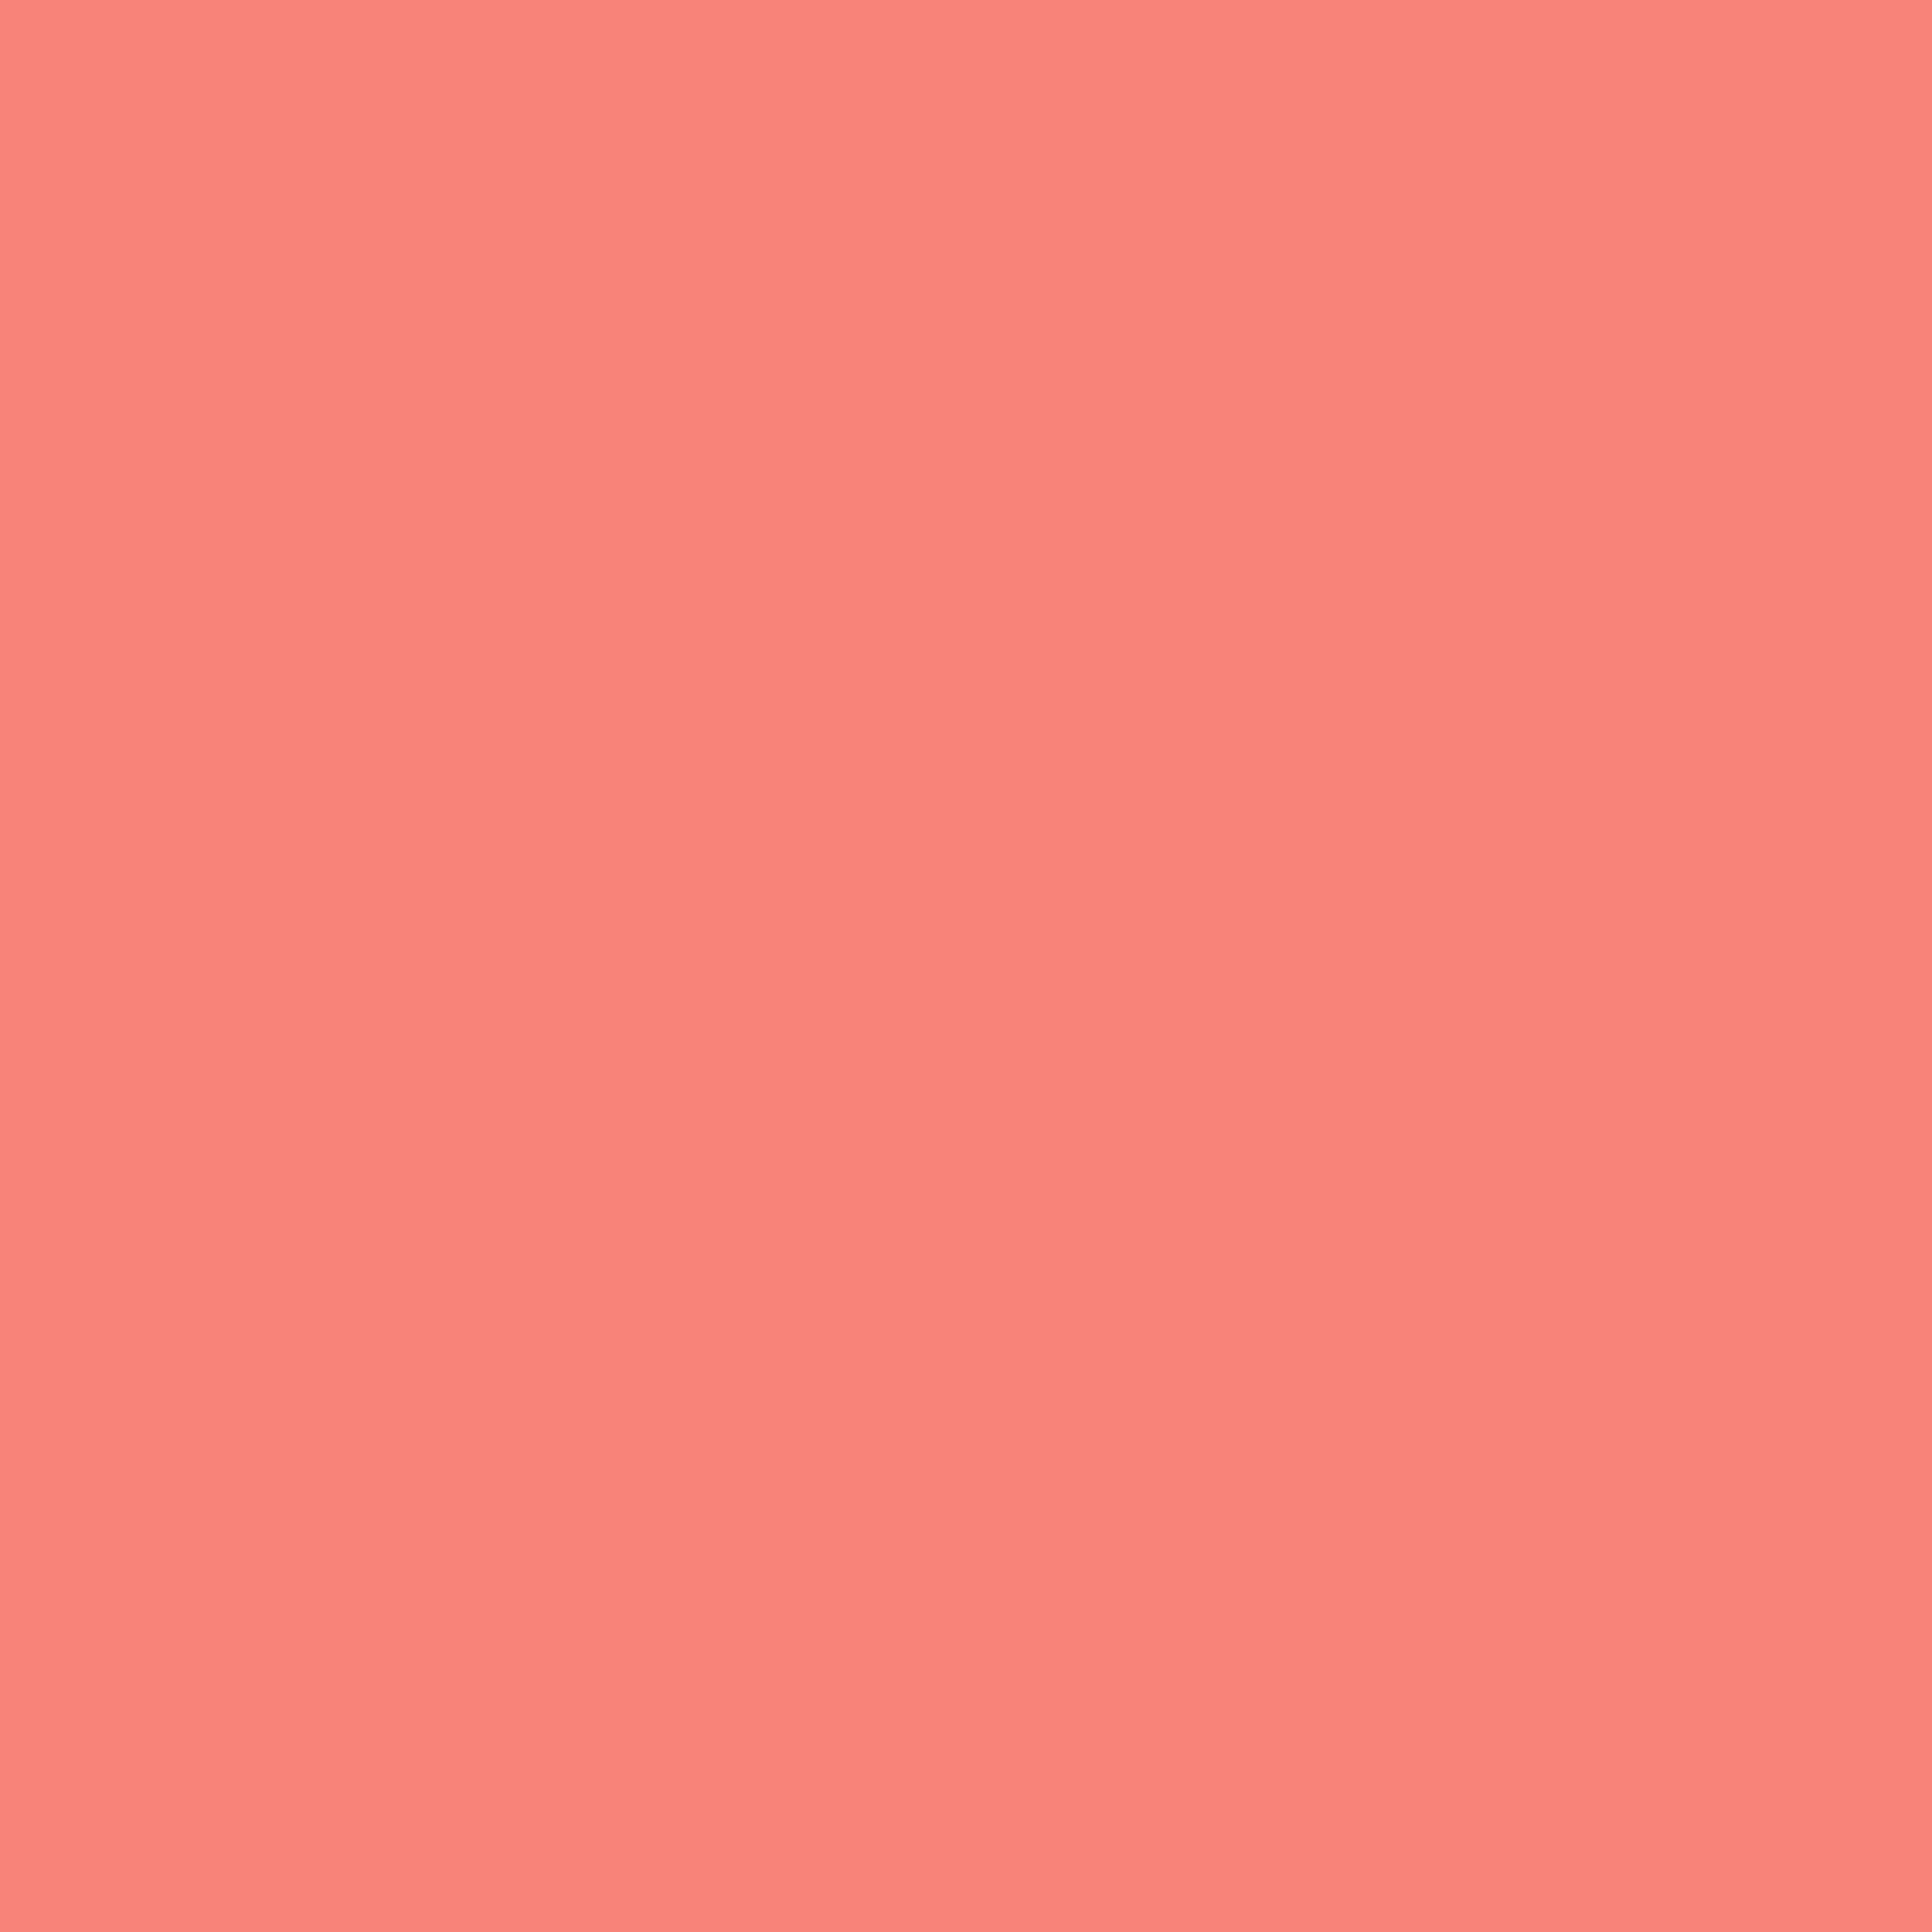 2732x2732 Tea Rose Orange Solid Color Background